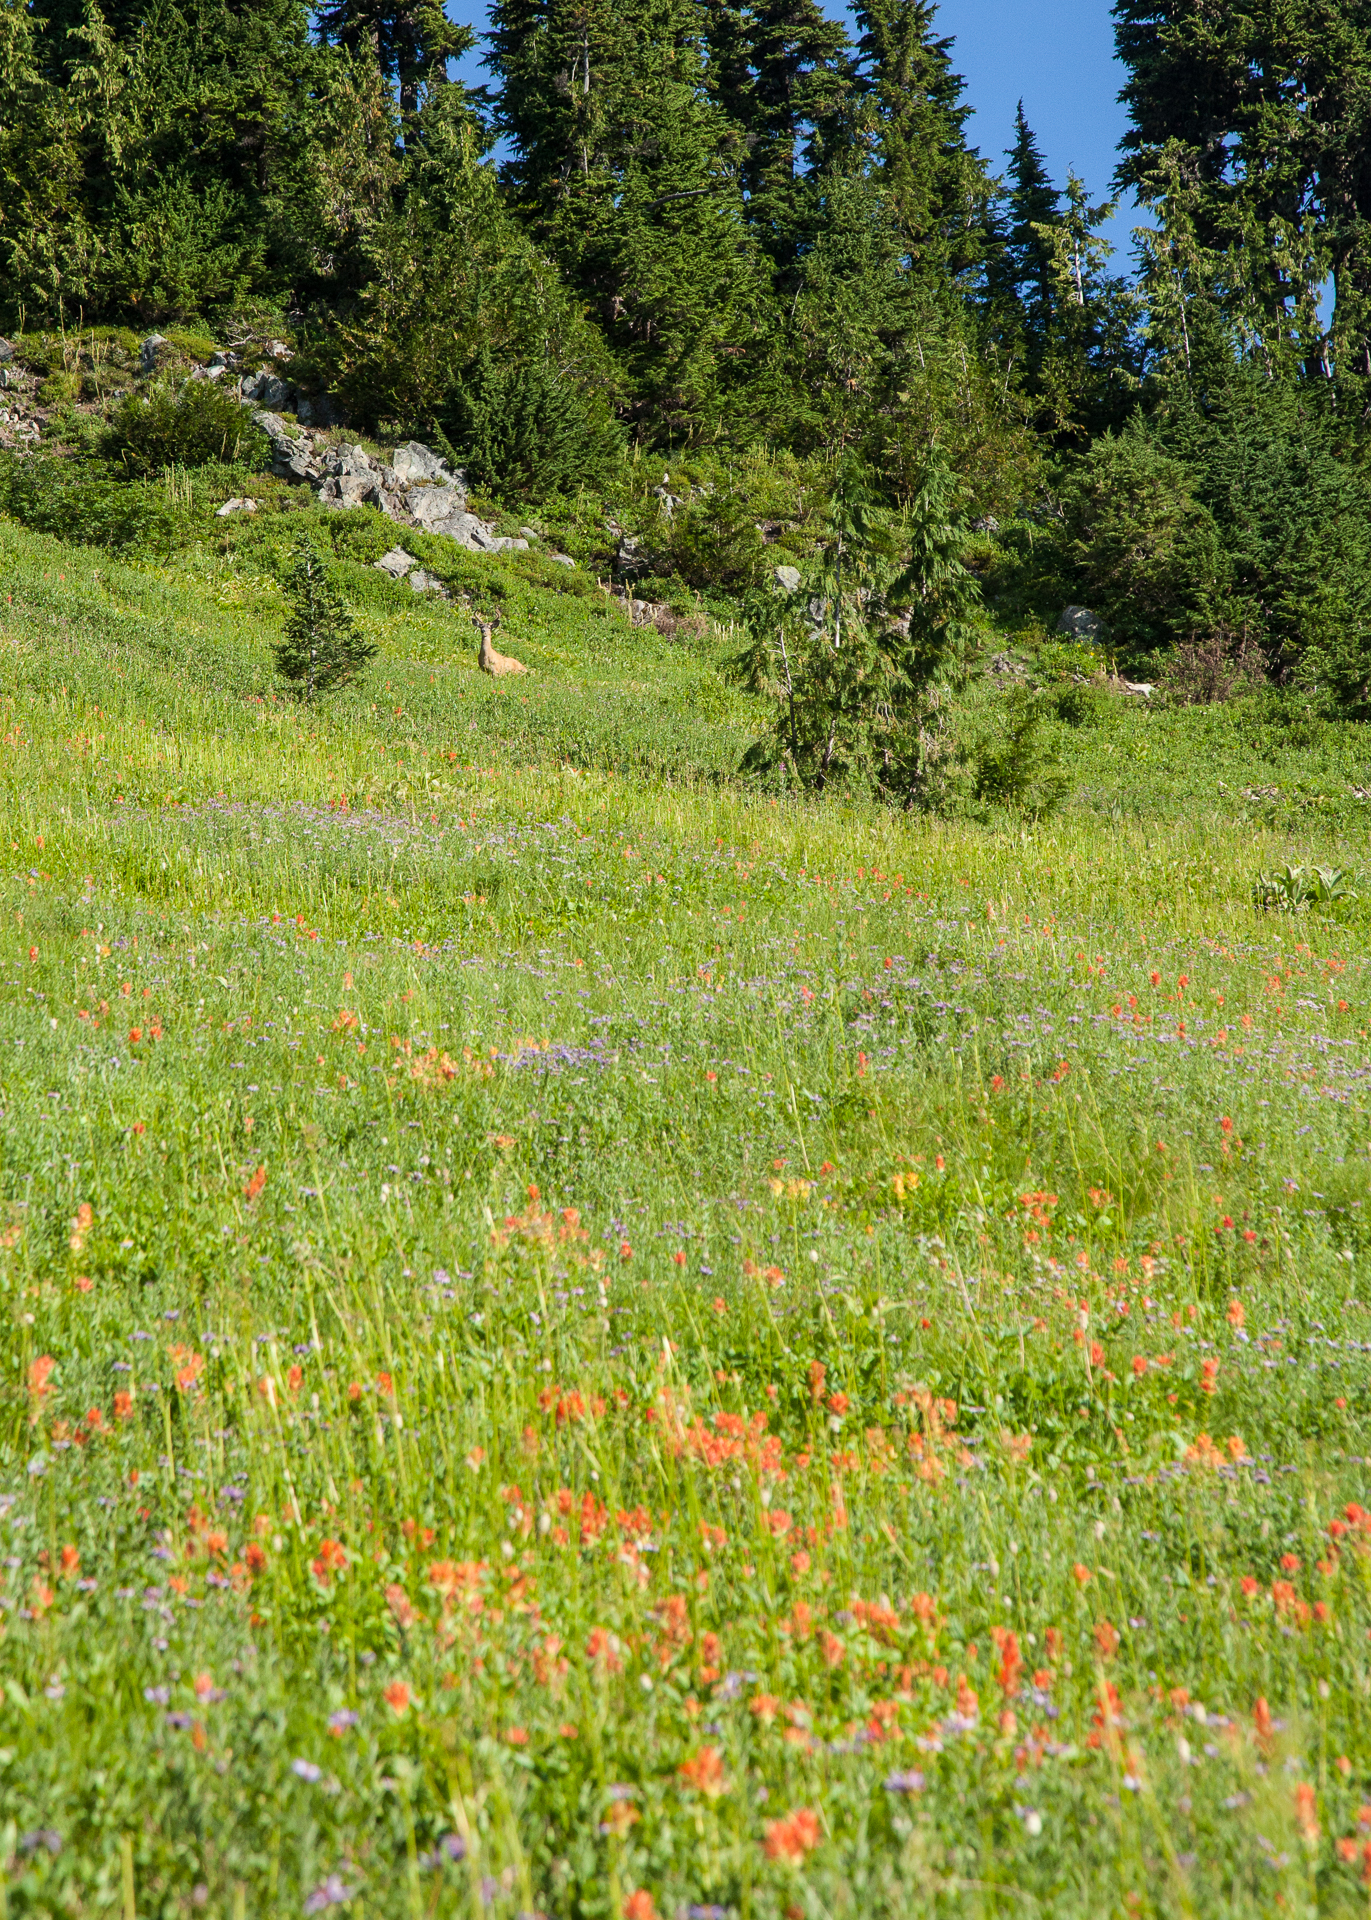 Along the path, we saw many deer, including this one in a full meadow of wildflowers.